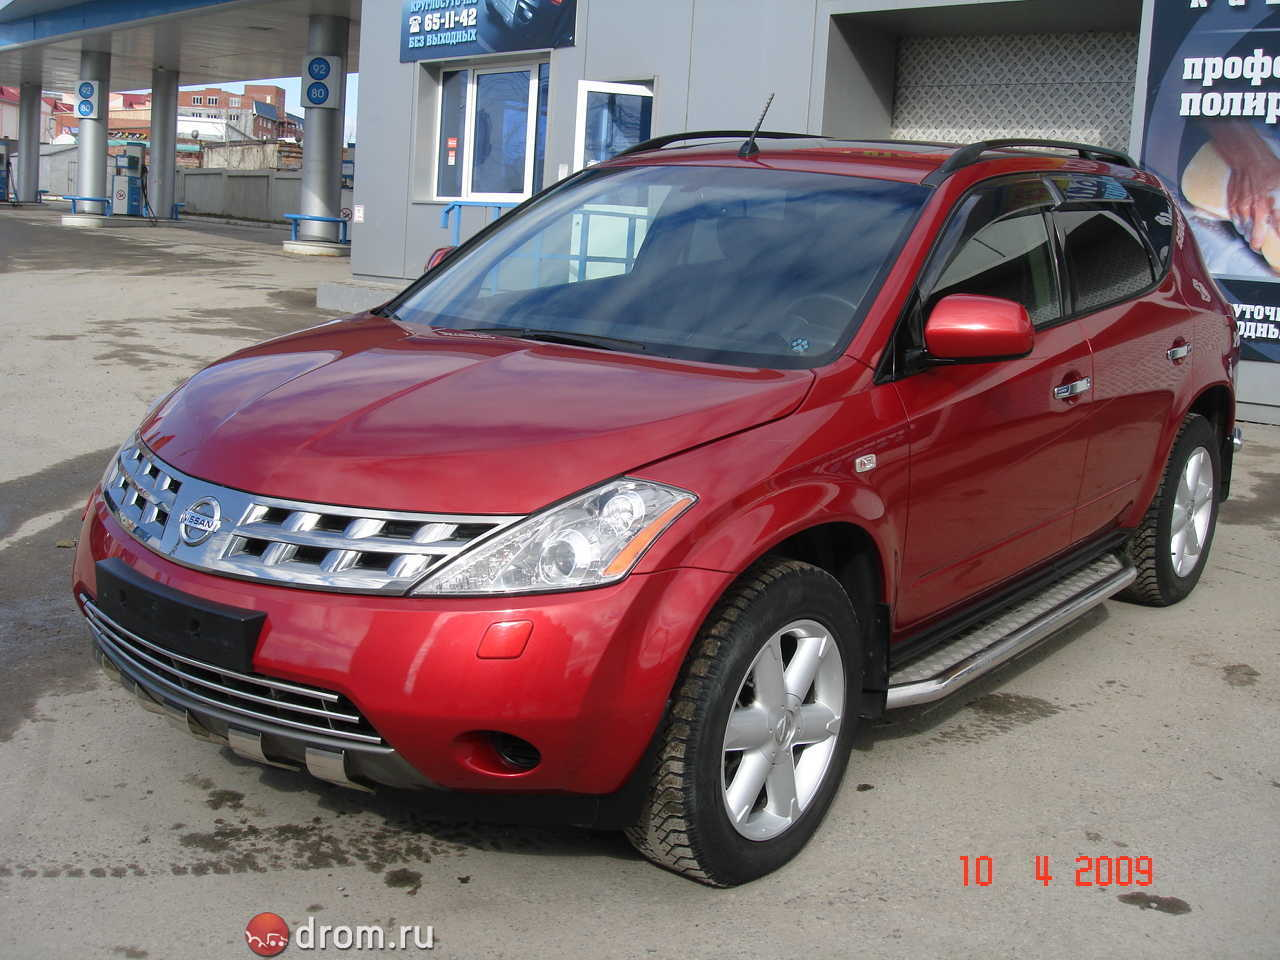 Nissan Murano 2008 Review Amazing Pictures And Images Look At Audi 1 8 Engine Diagram Photo 3